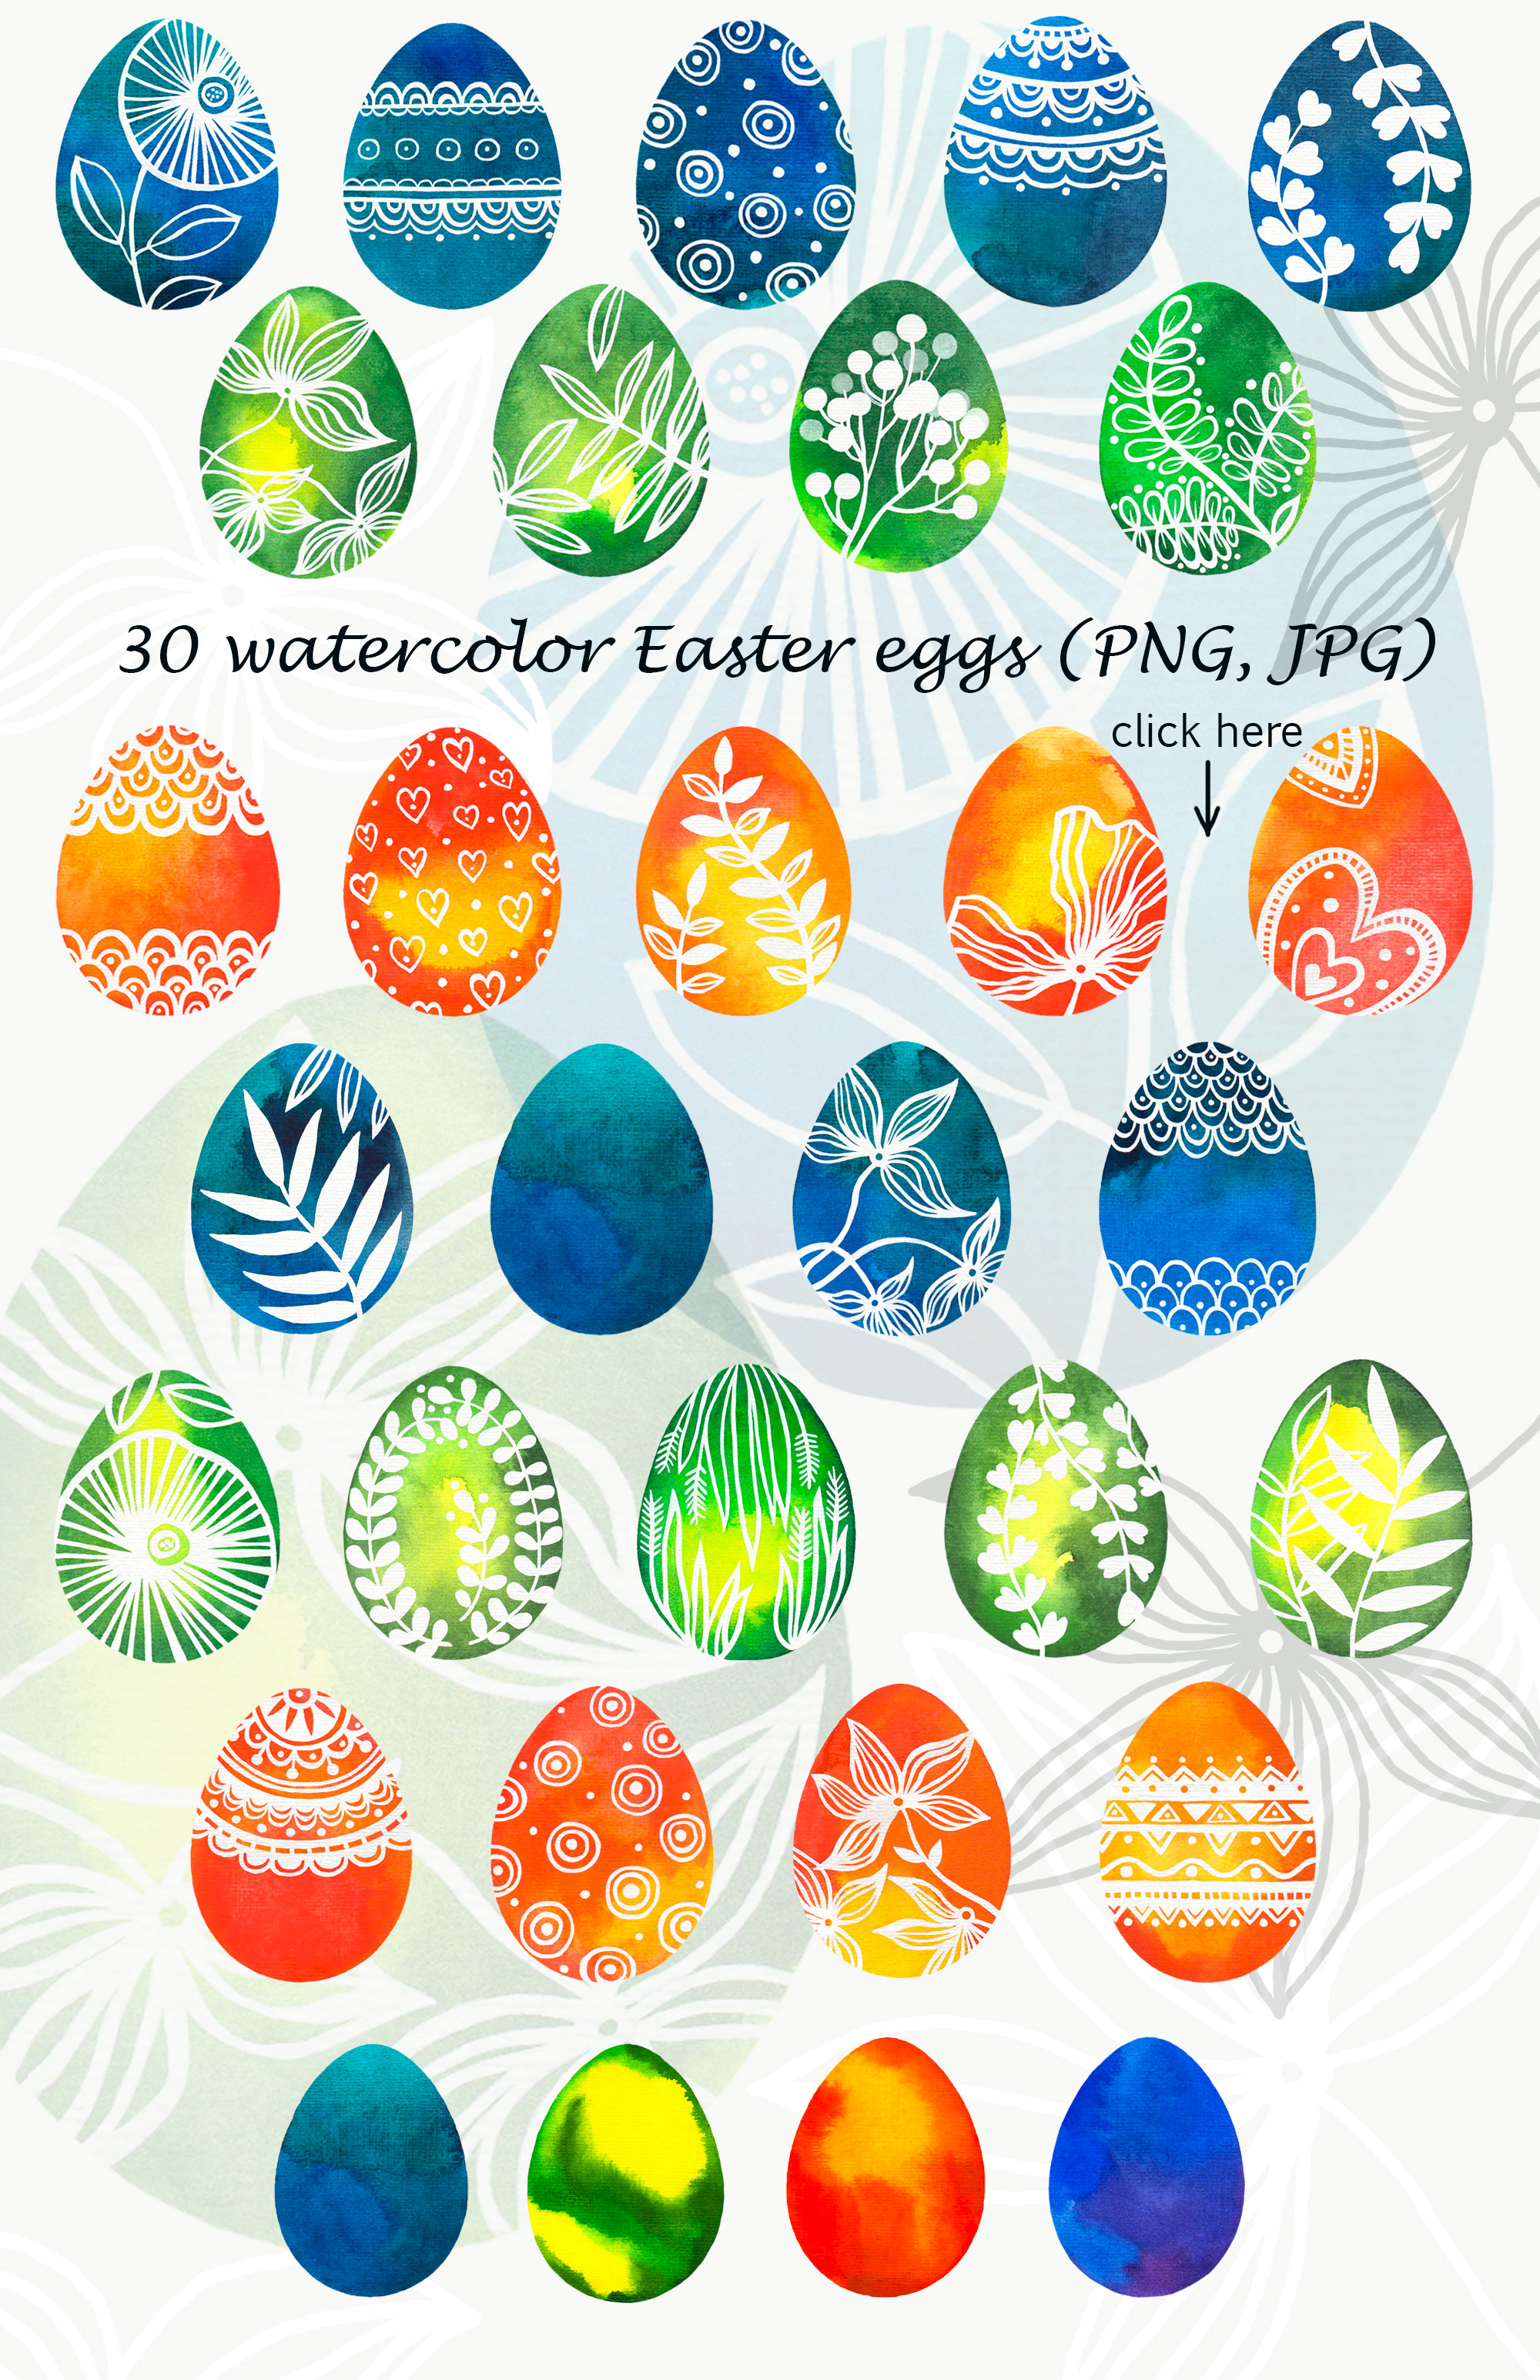 Watercolor Easter eggs, patterns example image 2